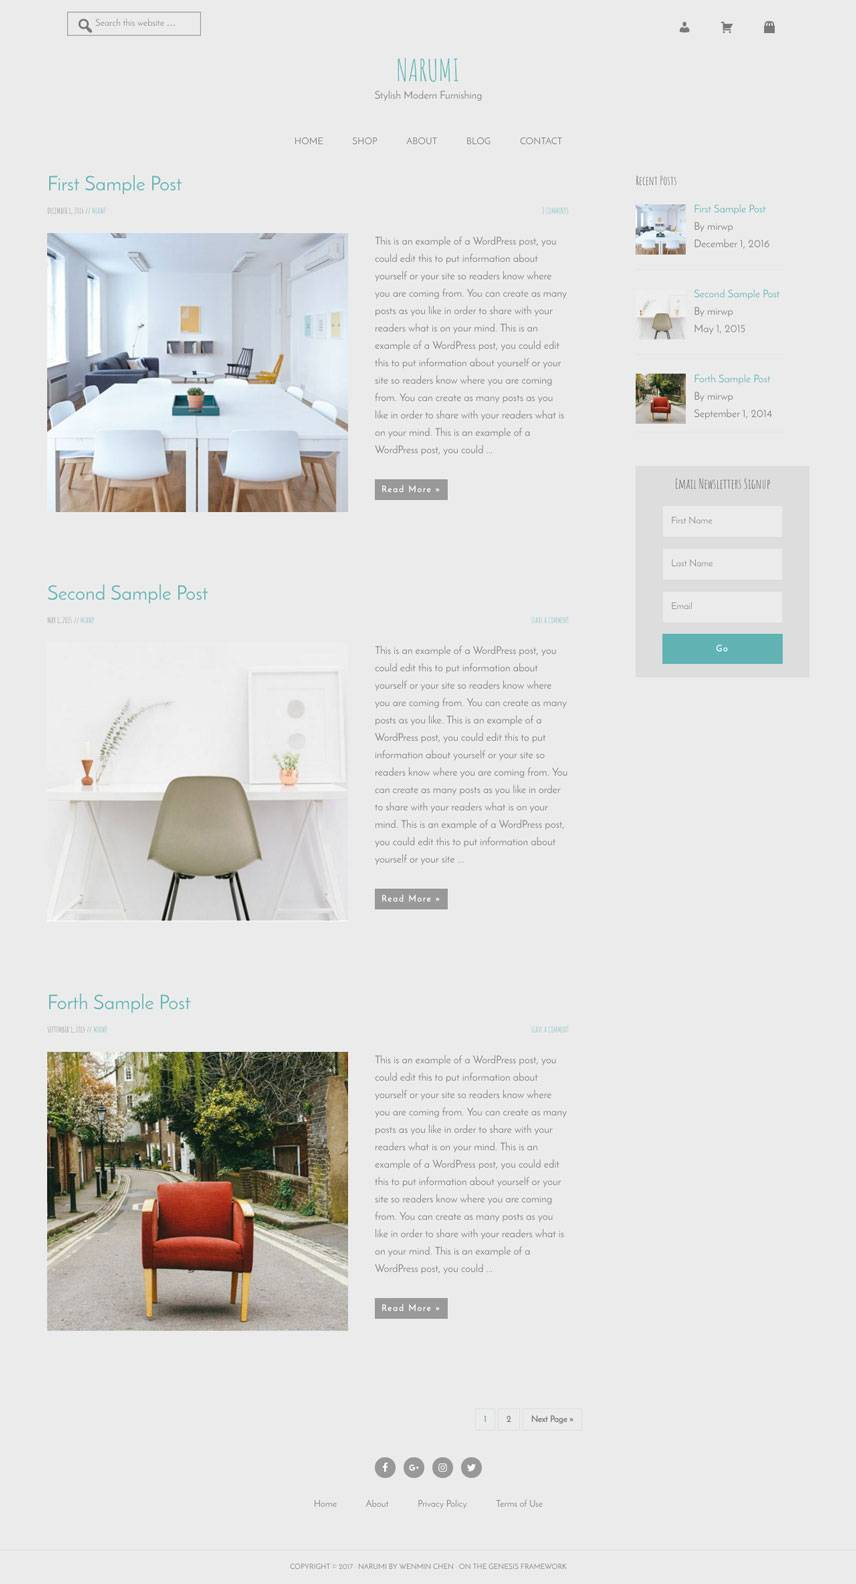 Narumi Theme - Blog | by Wenmin Chen, Boston freelance web developer & designer